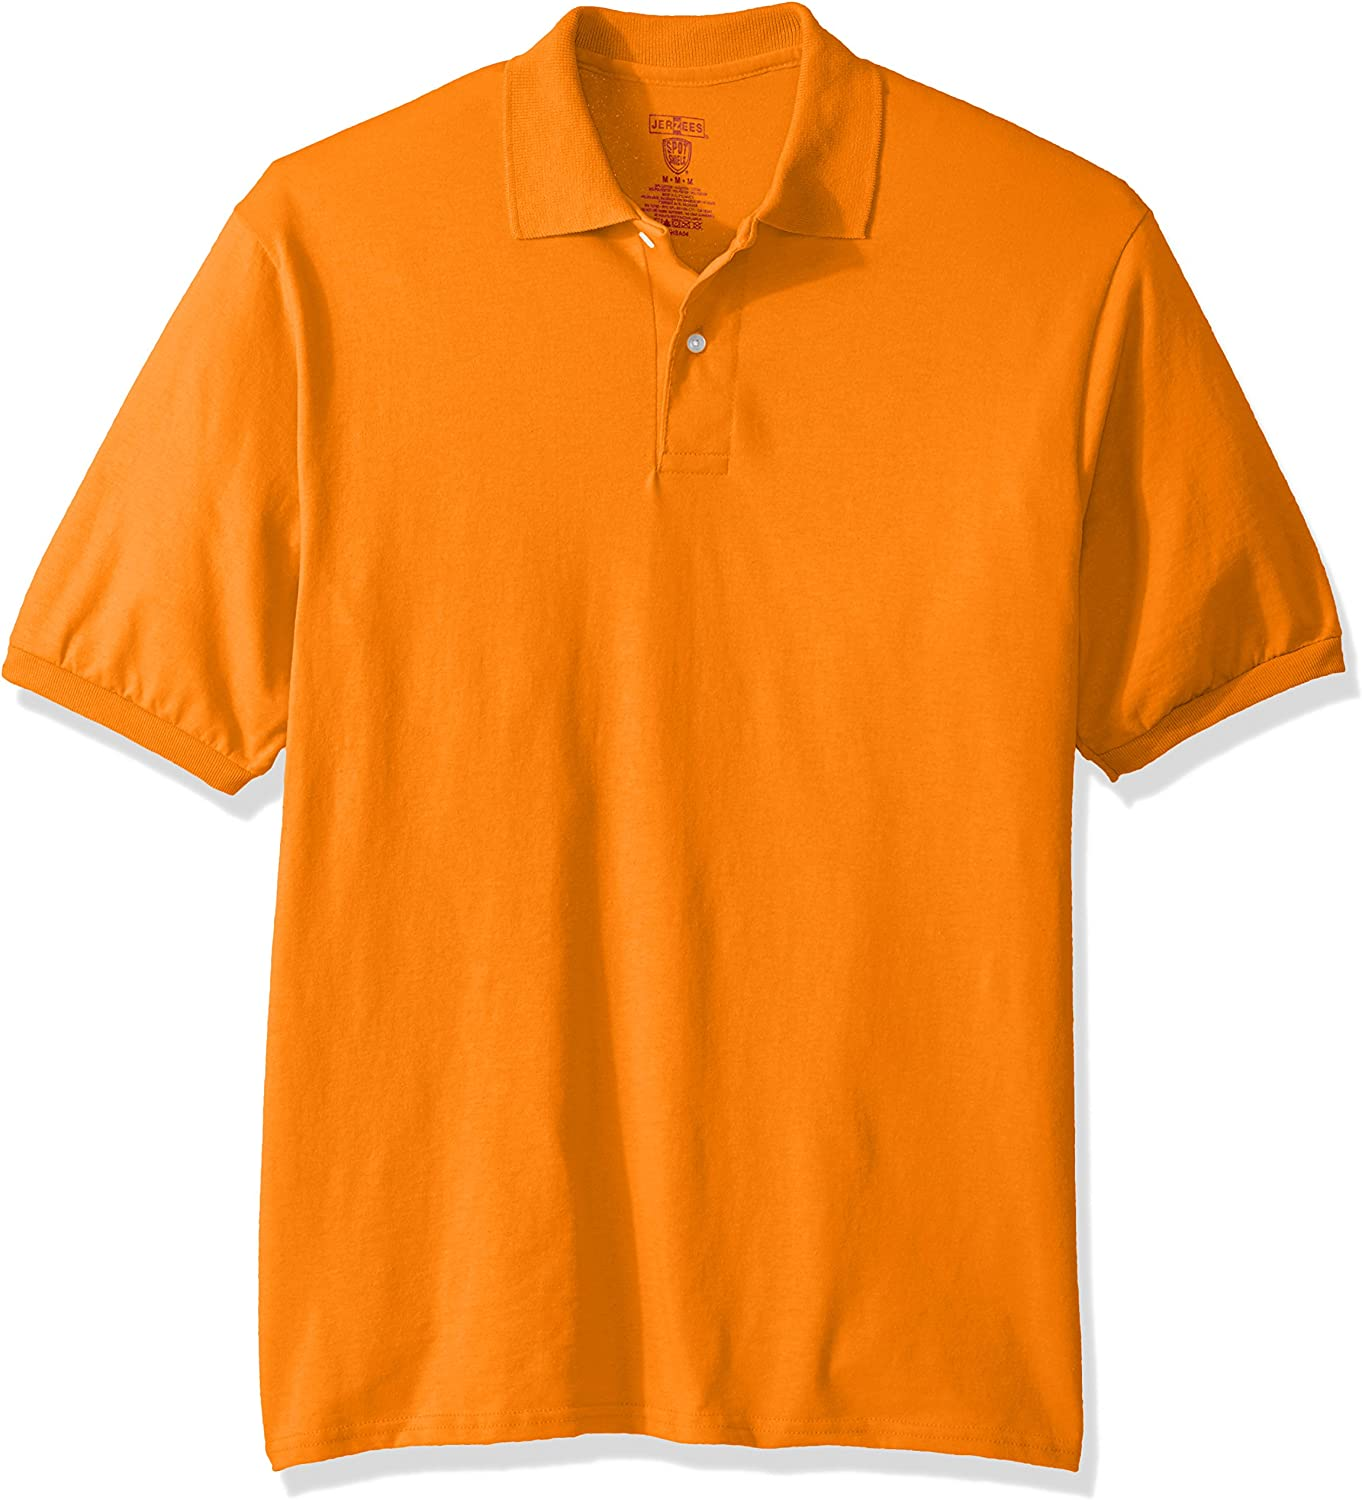 Jerzees MENS Polo Shirt with POCKET Cotton//Poly Blend with SPOTSHIELD S,M,L,XL